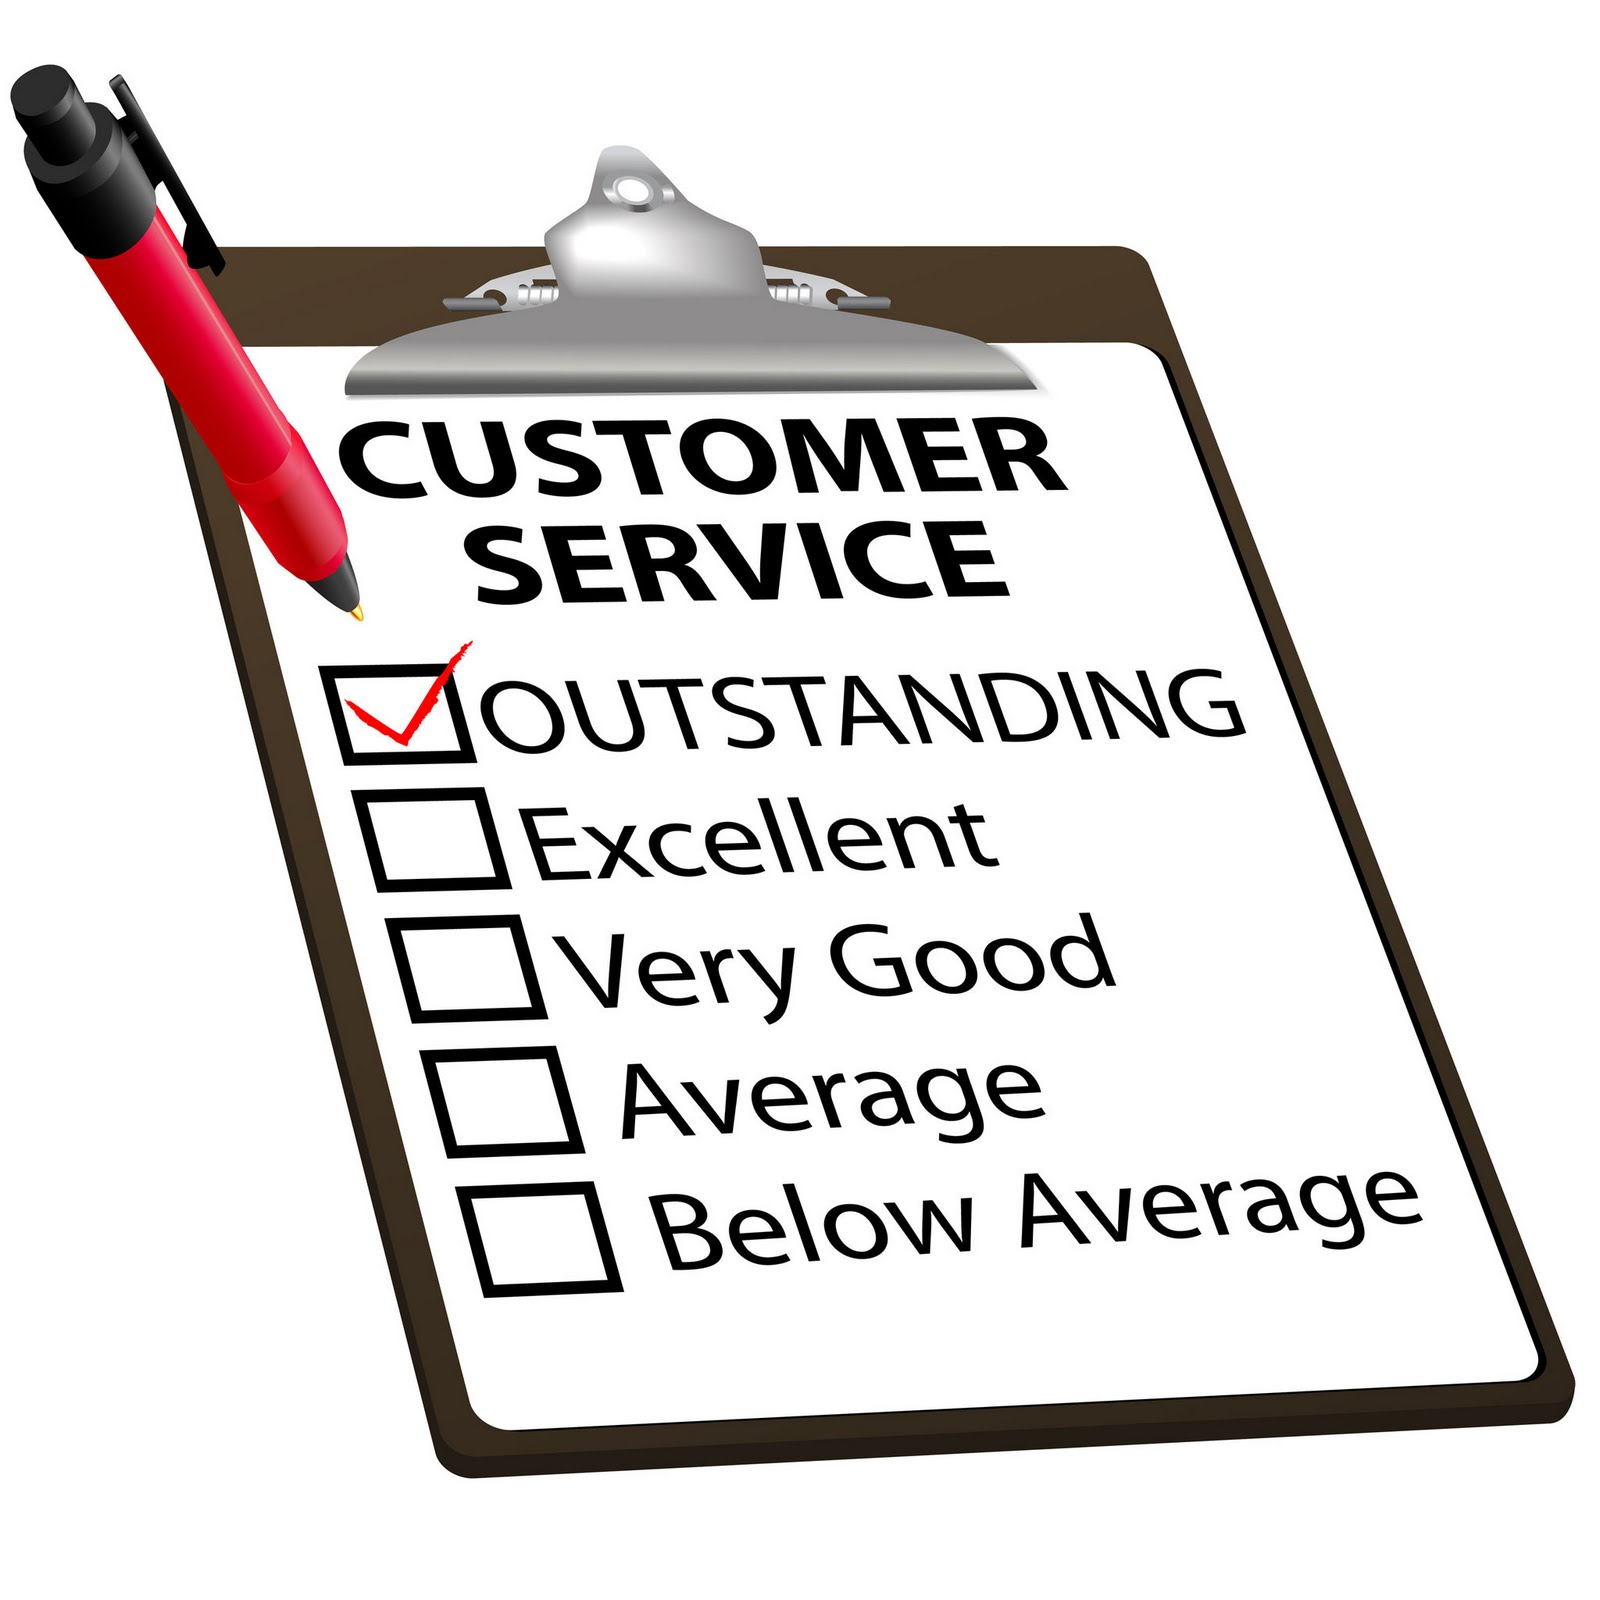 For a customer government group service